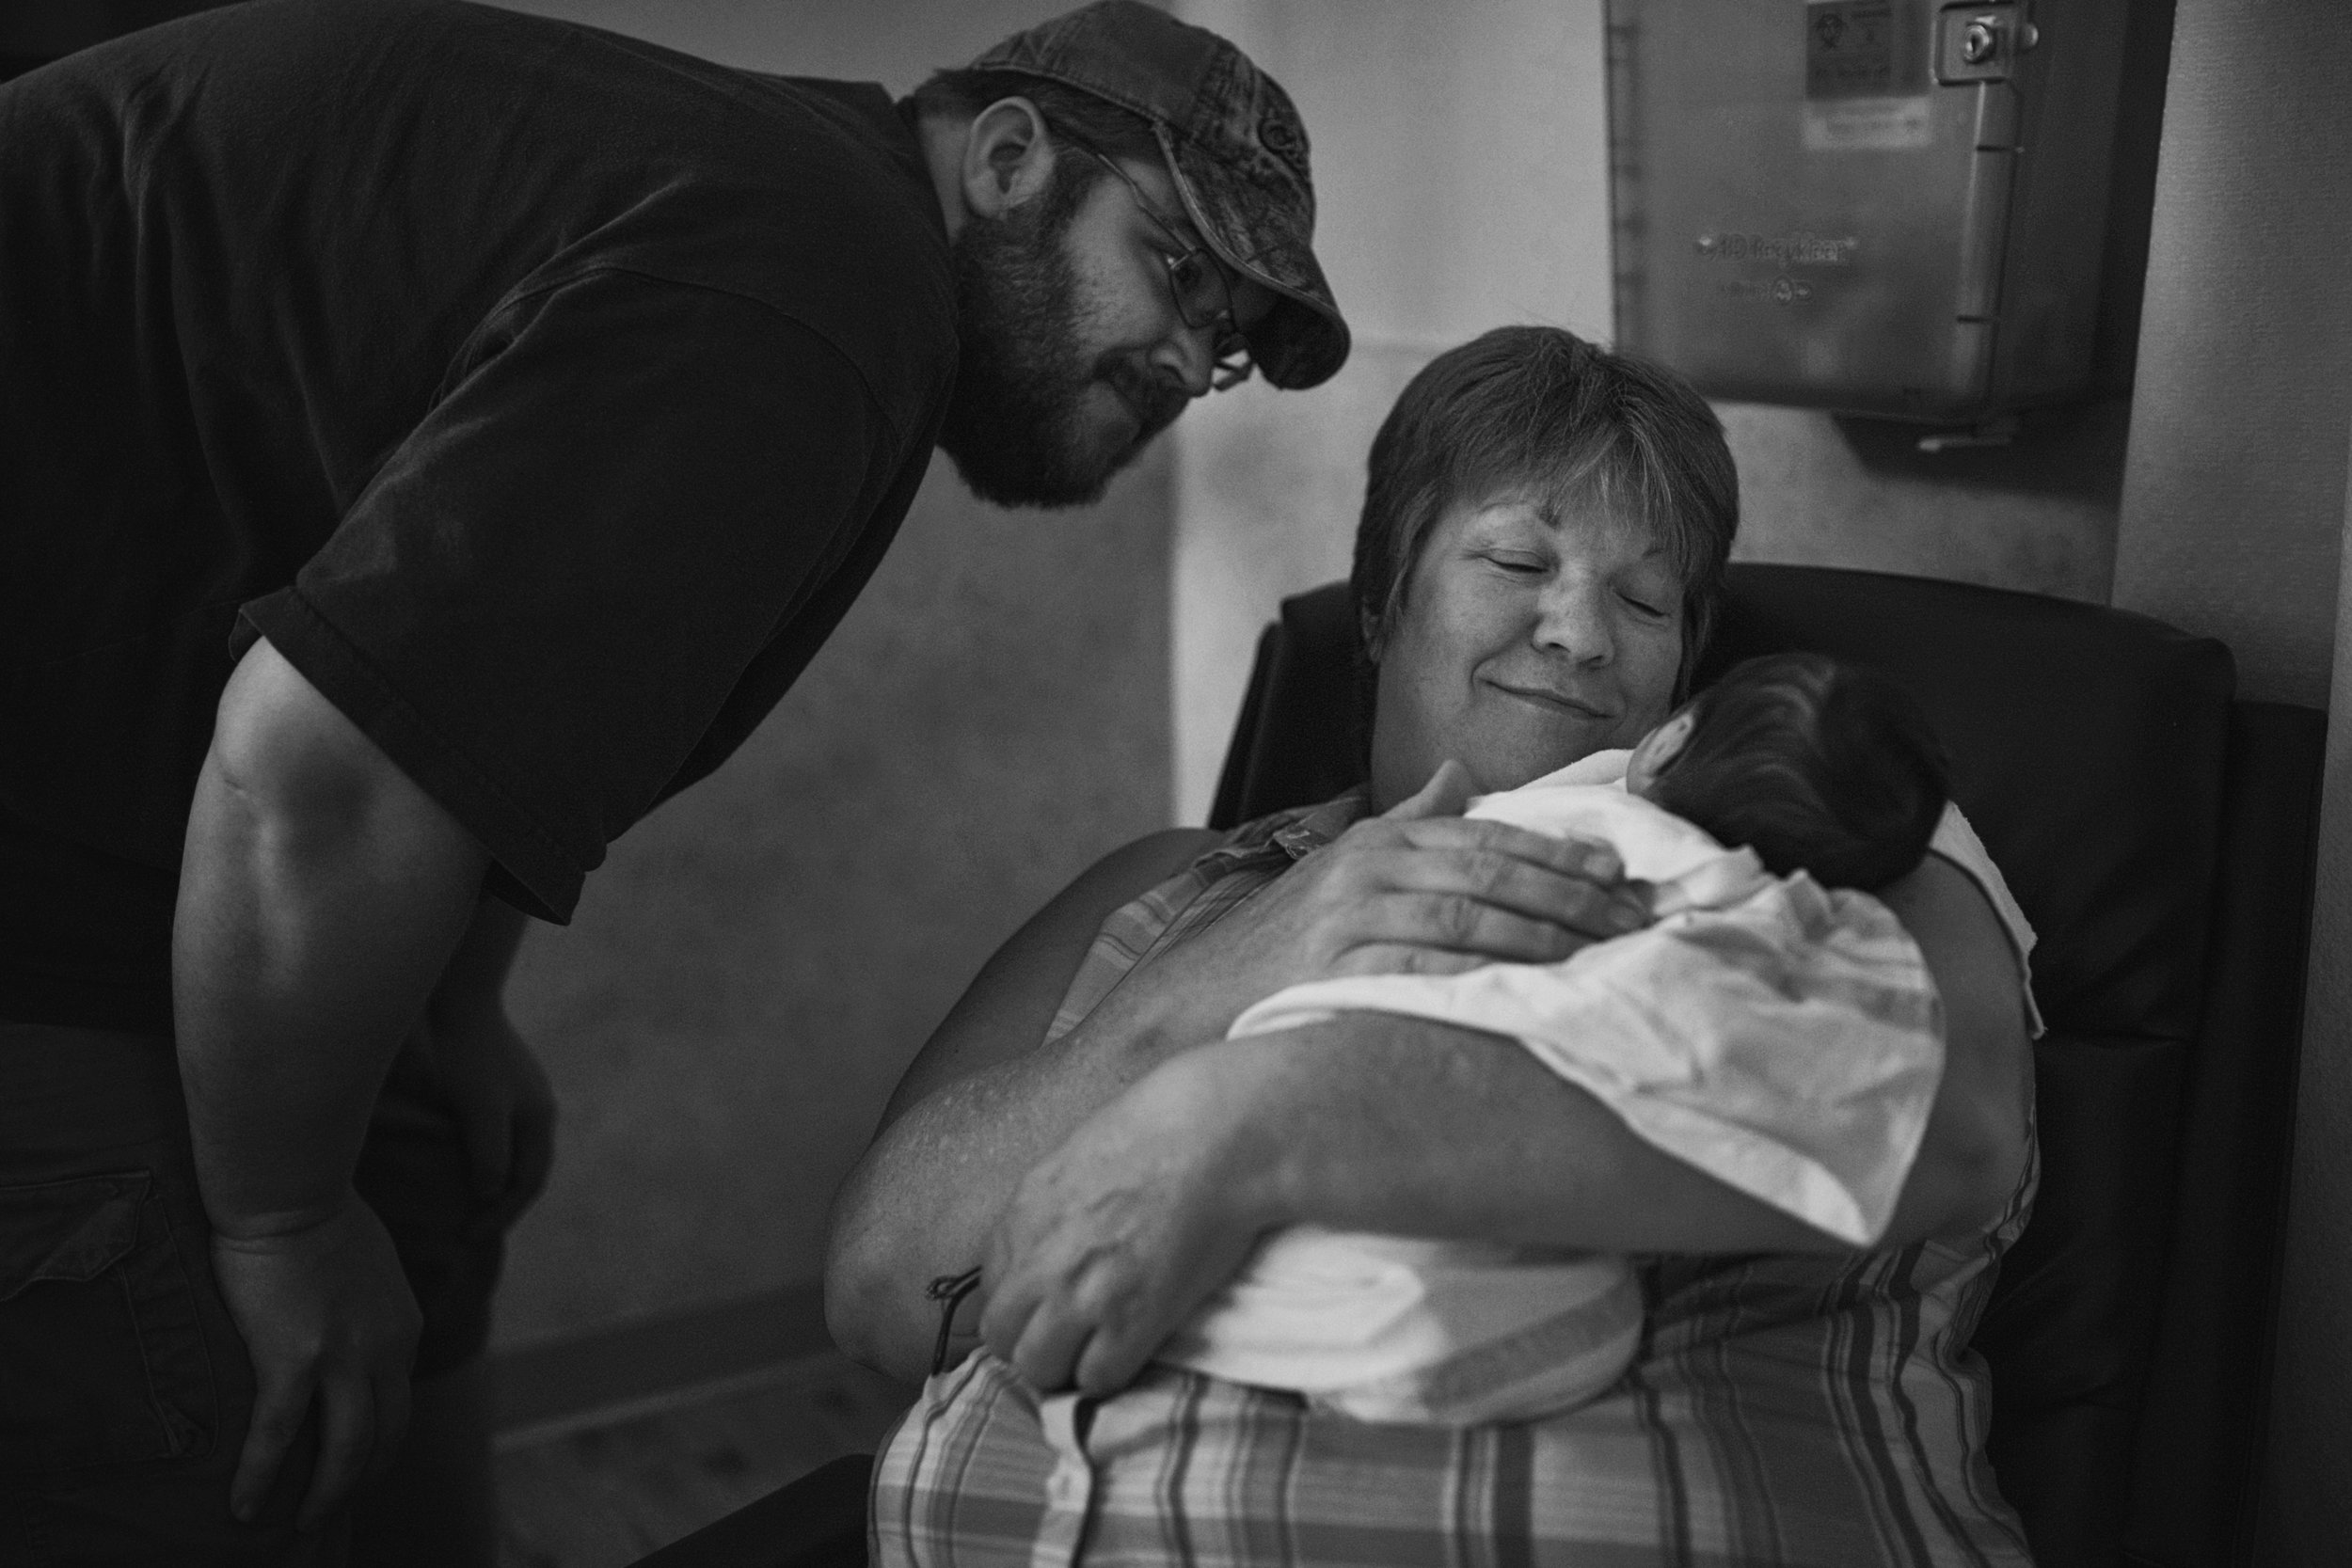 Best Richmond family photographer takes images of dad showing off his newborn baby daughter to his own mother.